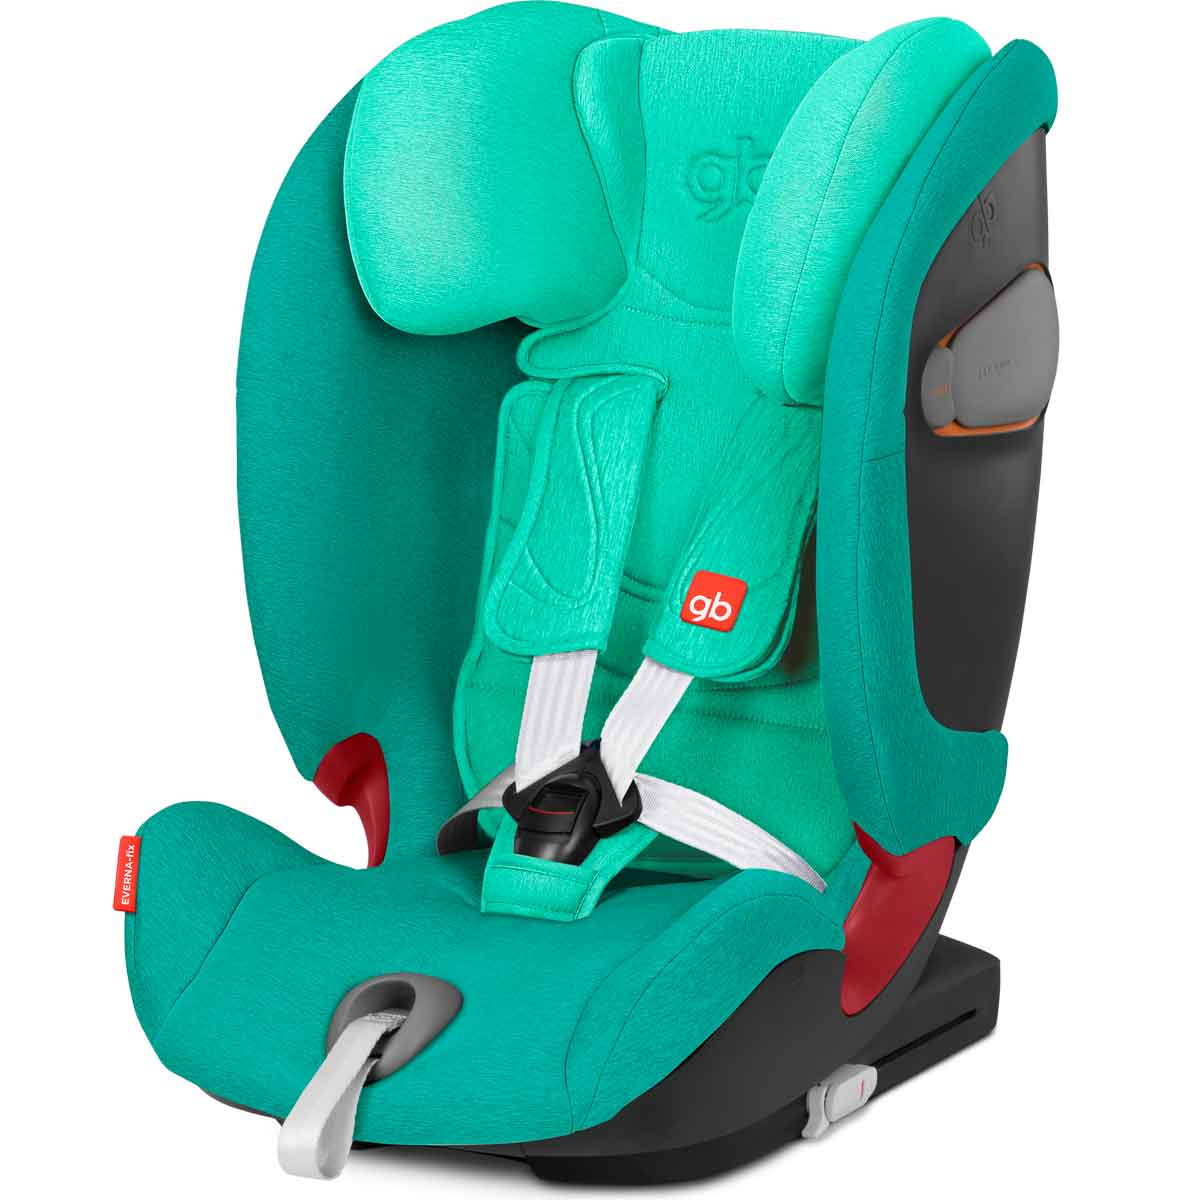 Silla de coche GB Everna fix Lagune blue